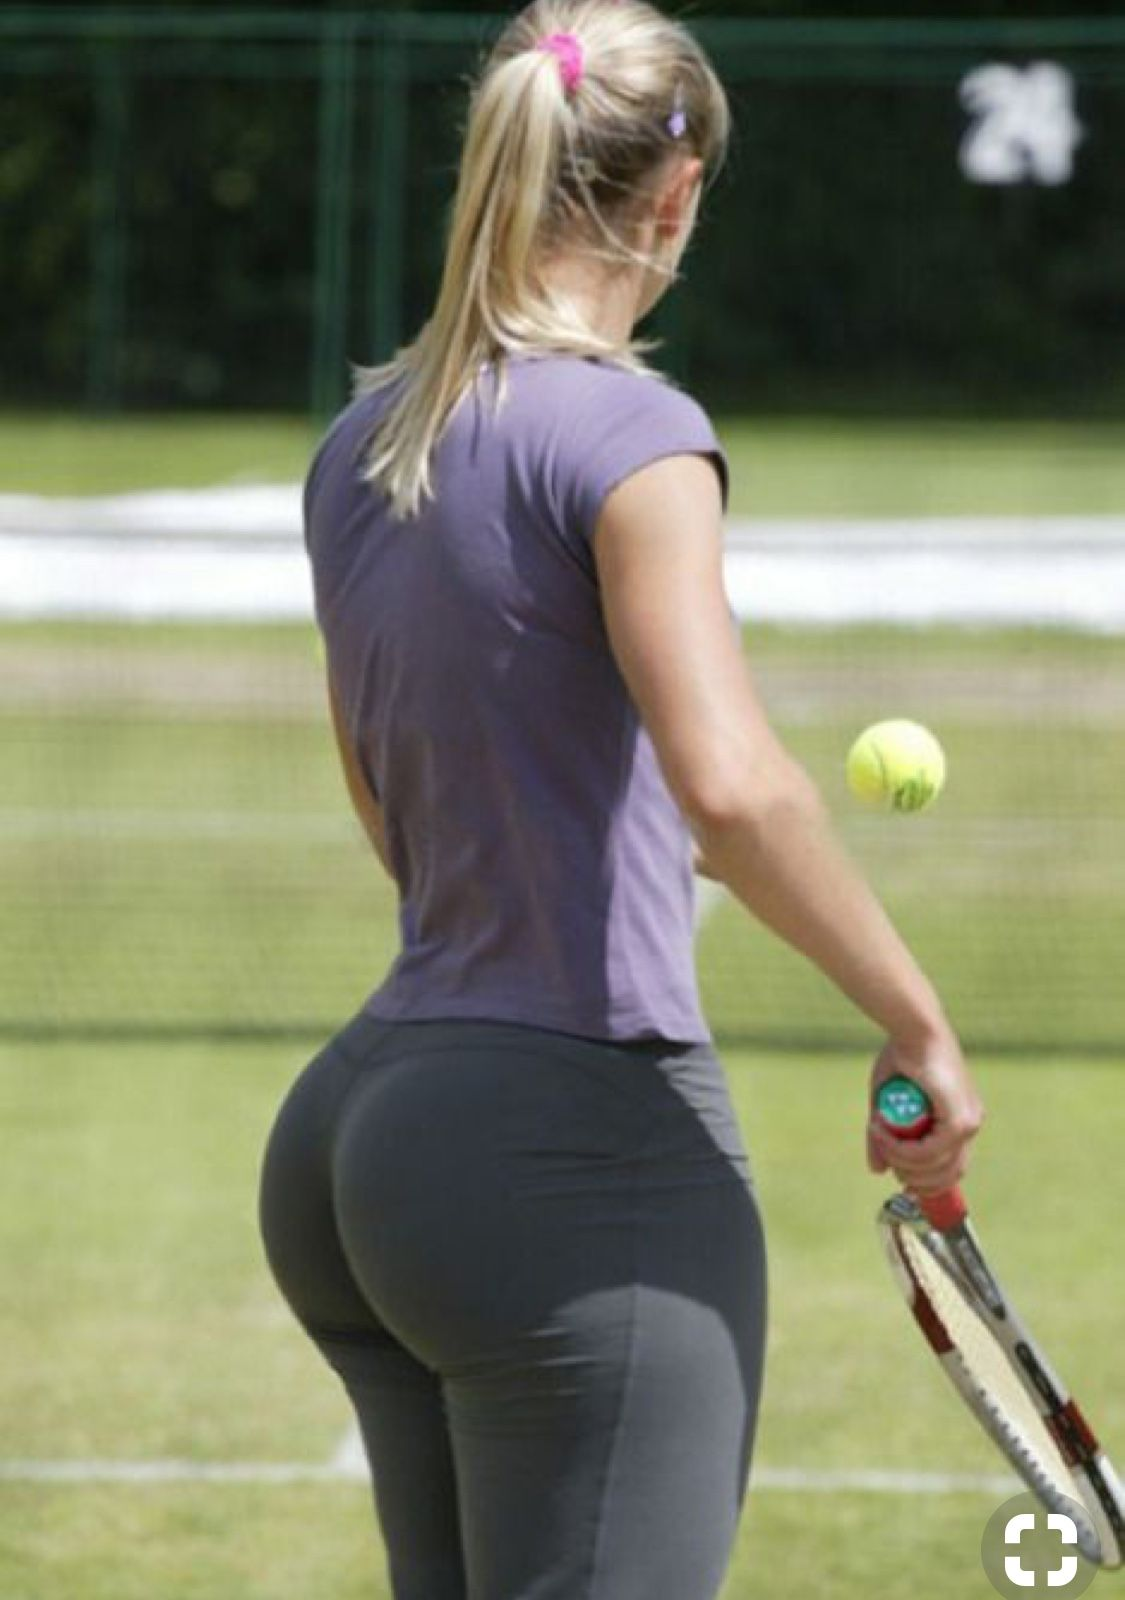 Girls with big booty playing sports — photo 8